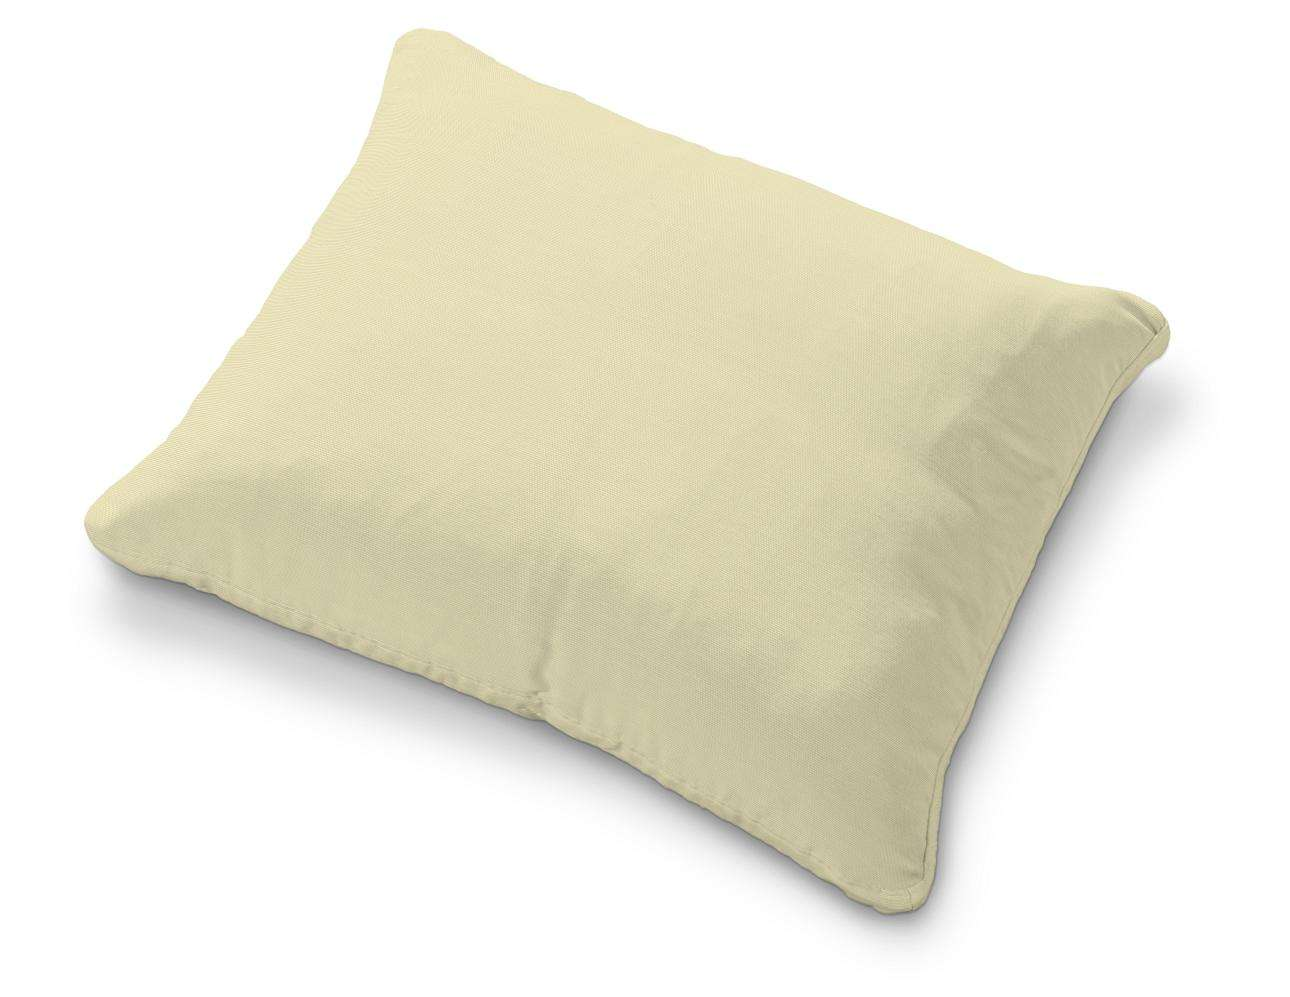 Cotton Panama, creme